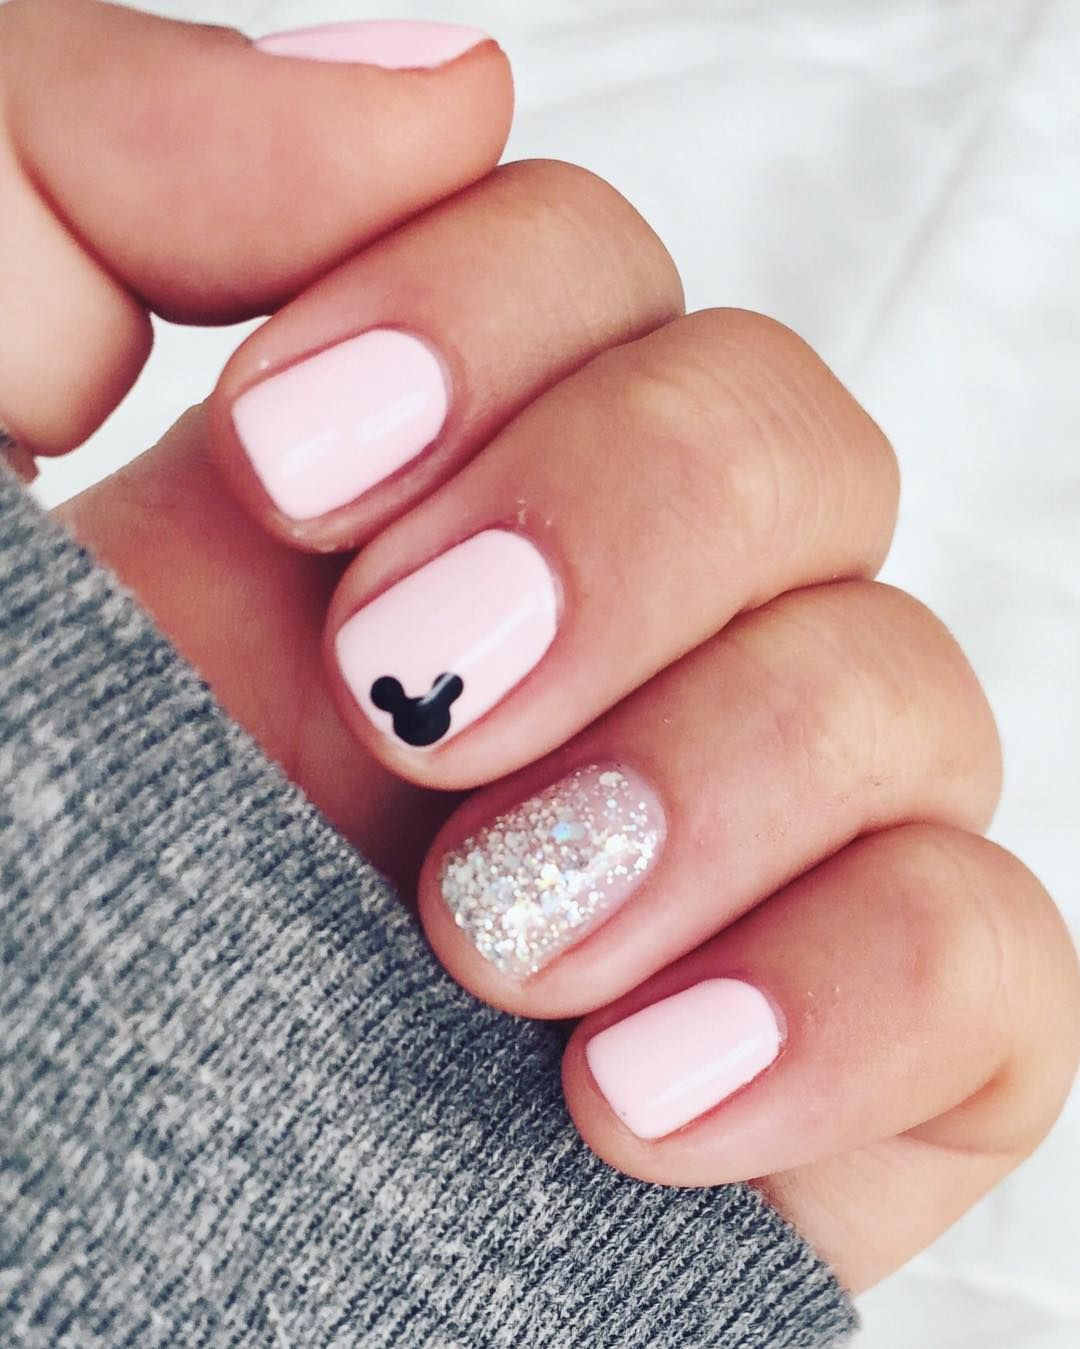 These Disney Nail Art Ideas Will Inspire Your Next Magical Manicure - Gorgeous Metallic Nail Art Designs That Will Shimmer And Shine You